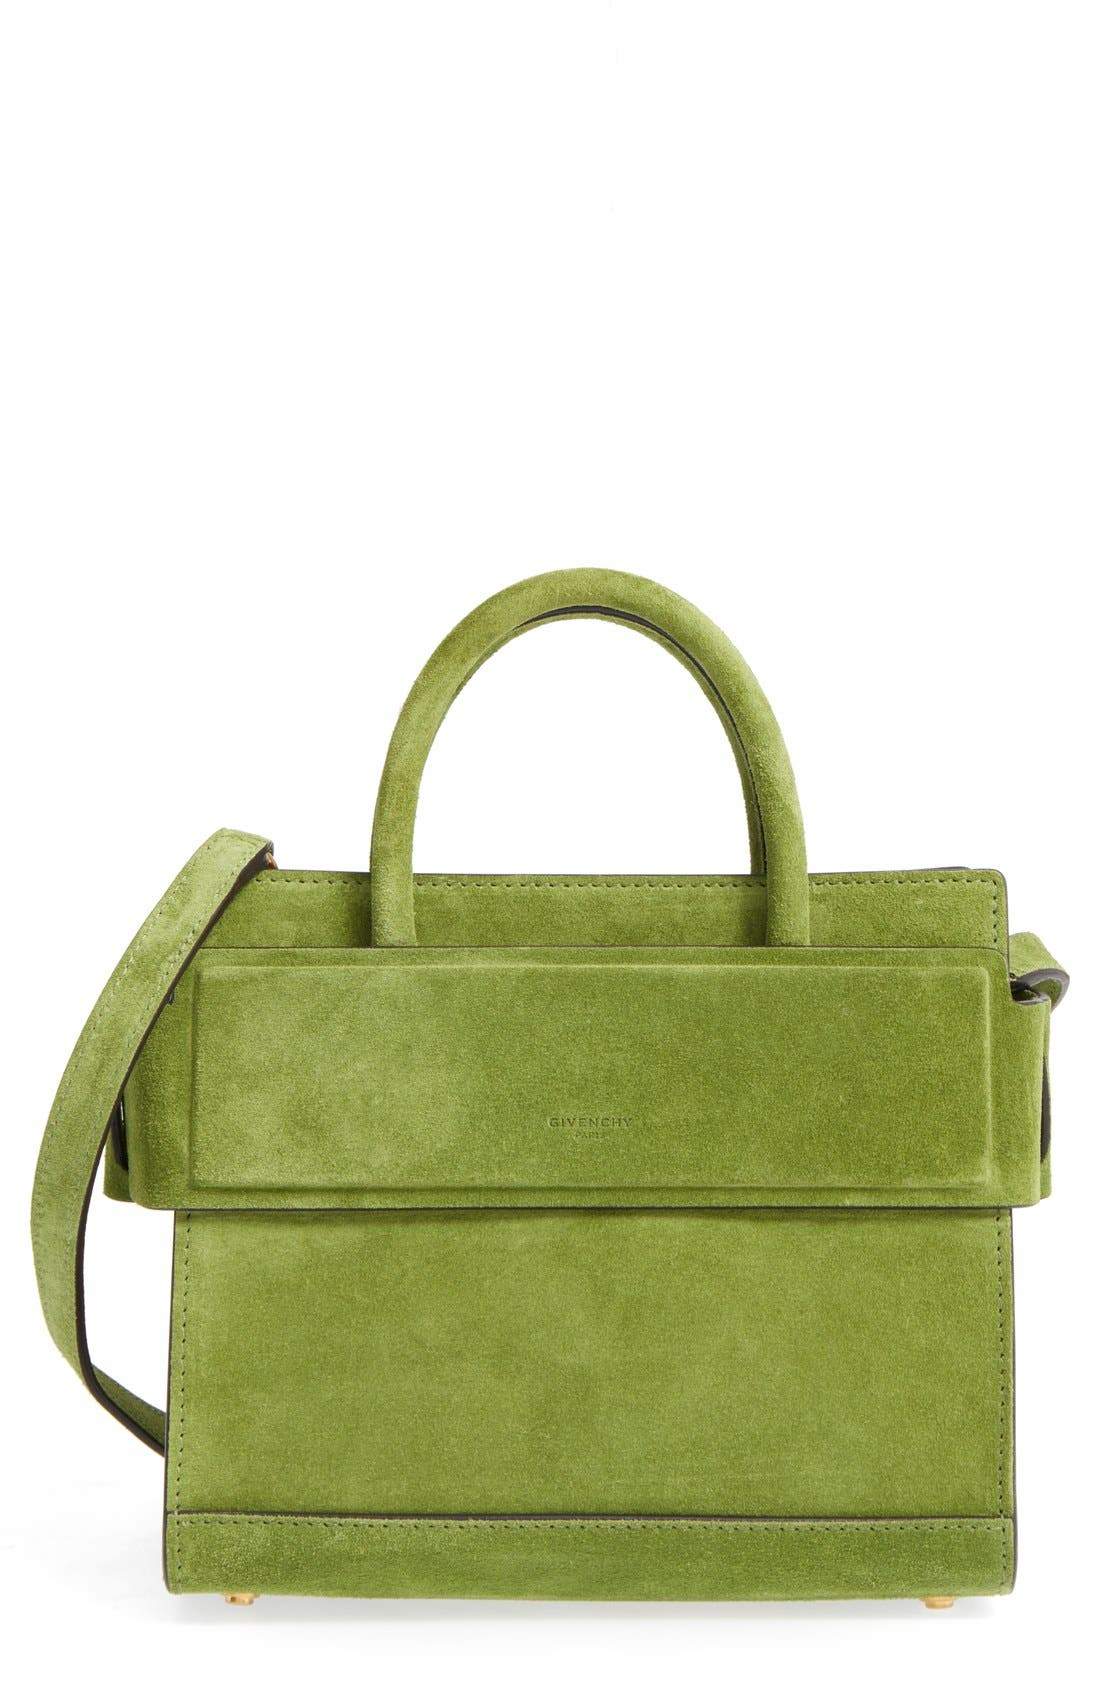 Alternate Image 1 Selected - Givenchy Mini Horizon Suede Tote